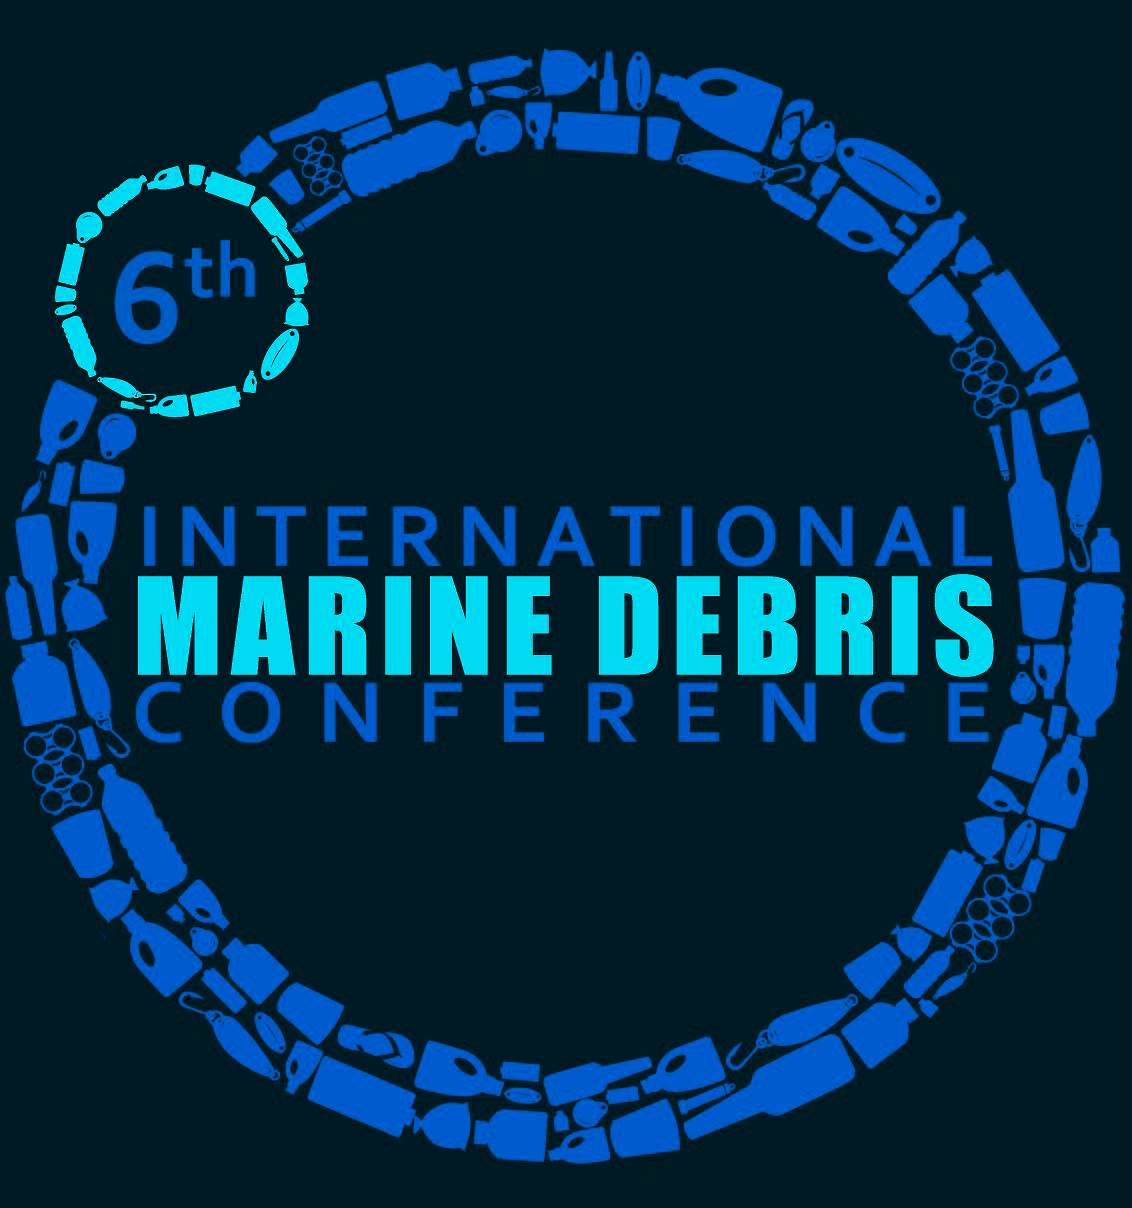 IMDC-Logo-6_Marine_Debris_International_Conferences.jpg